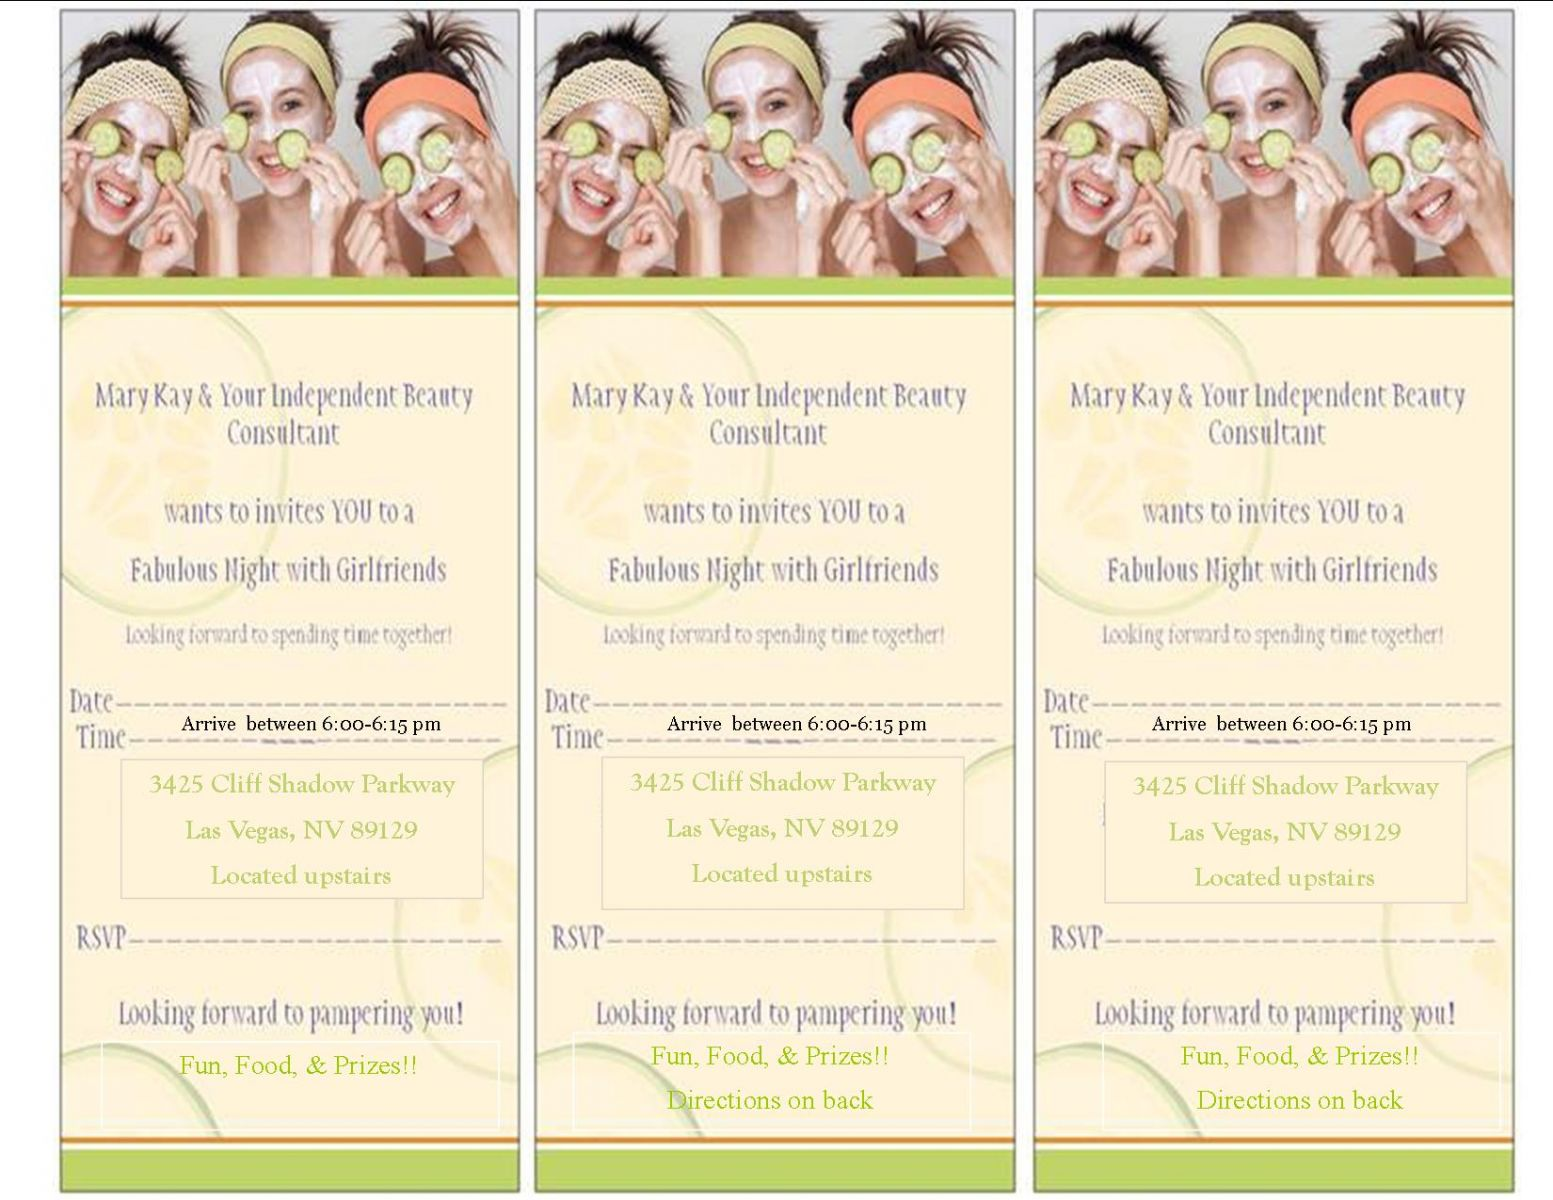 Mary kay hostess packet office halloween contest invite view